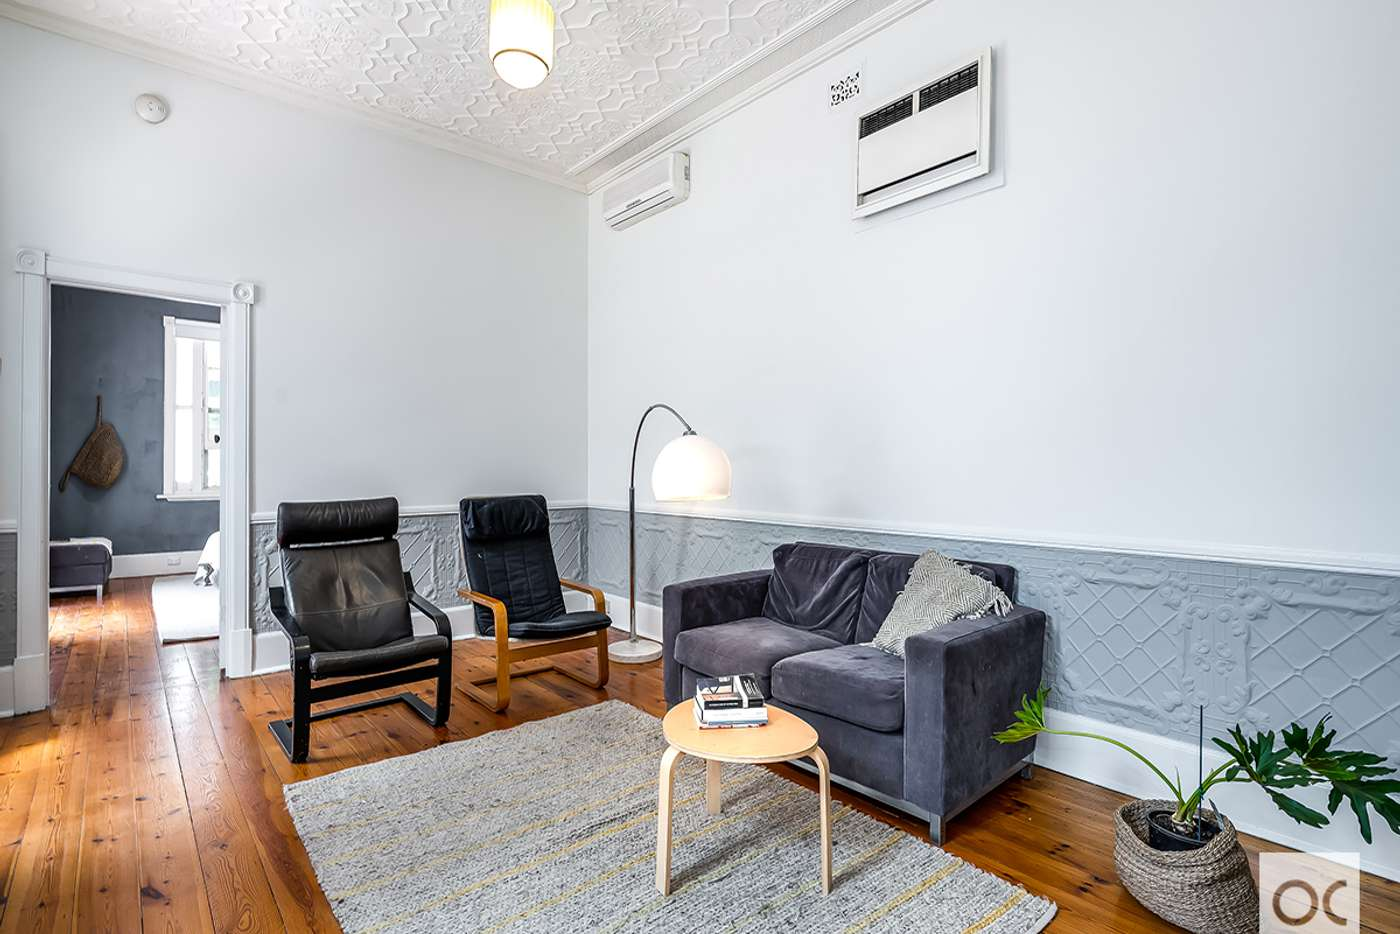 Fifth view of Homely house listing, 41 Huntriss Street, Torrensville SA 5031